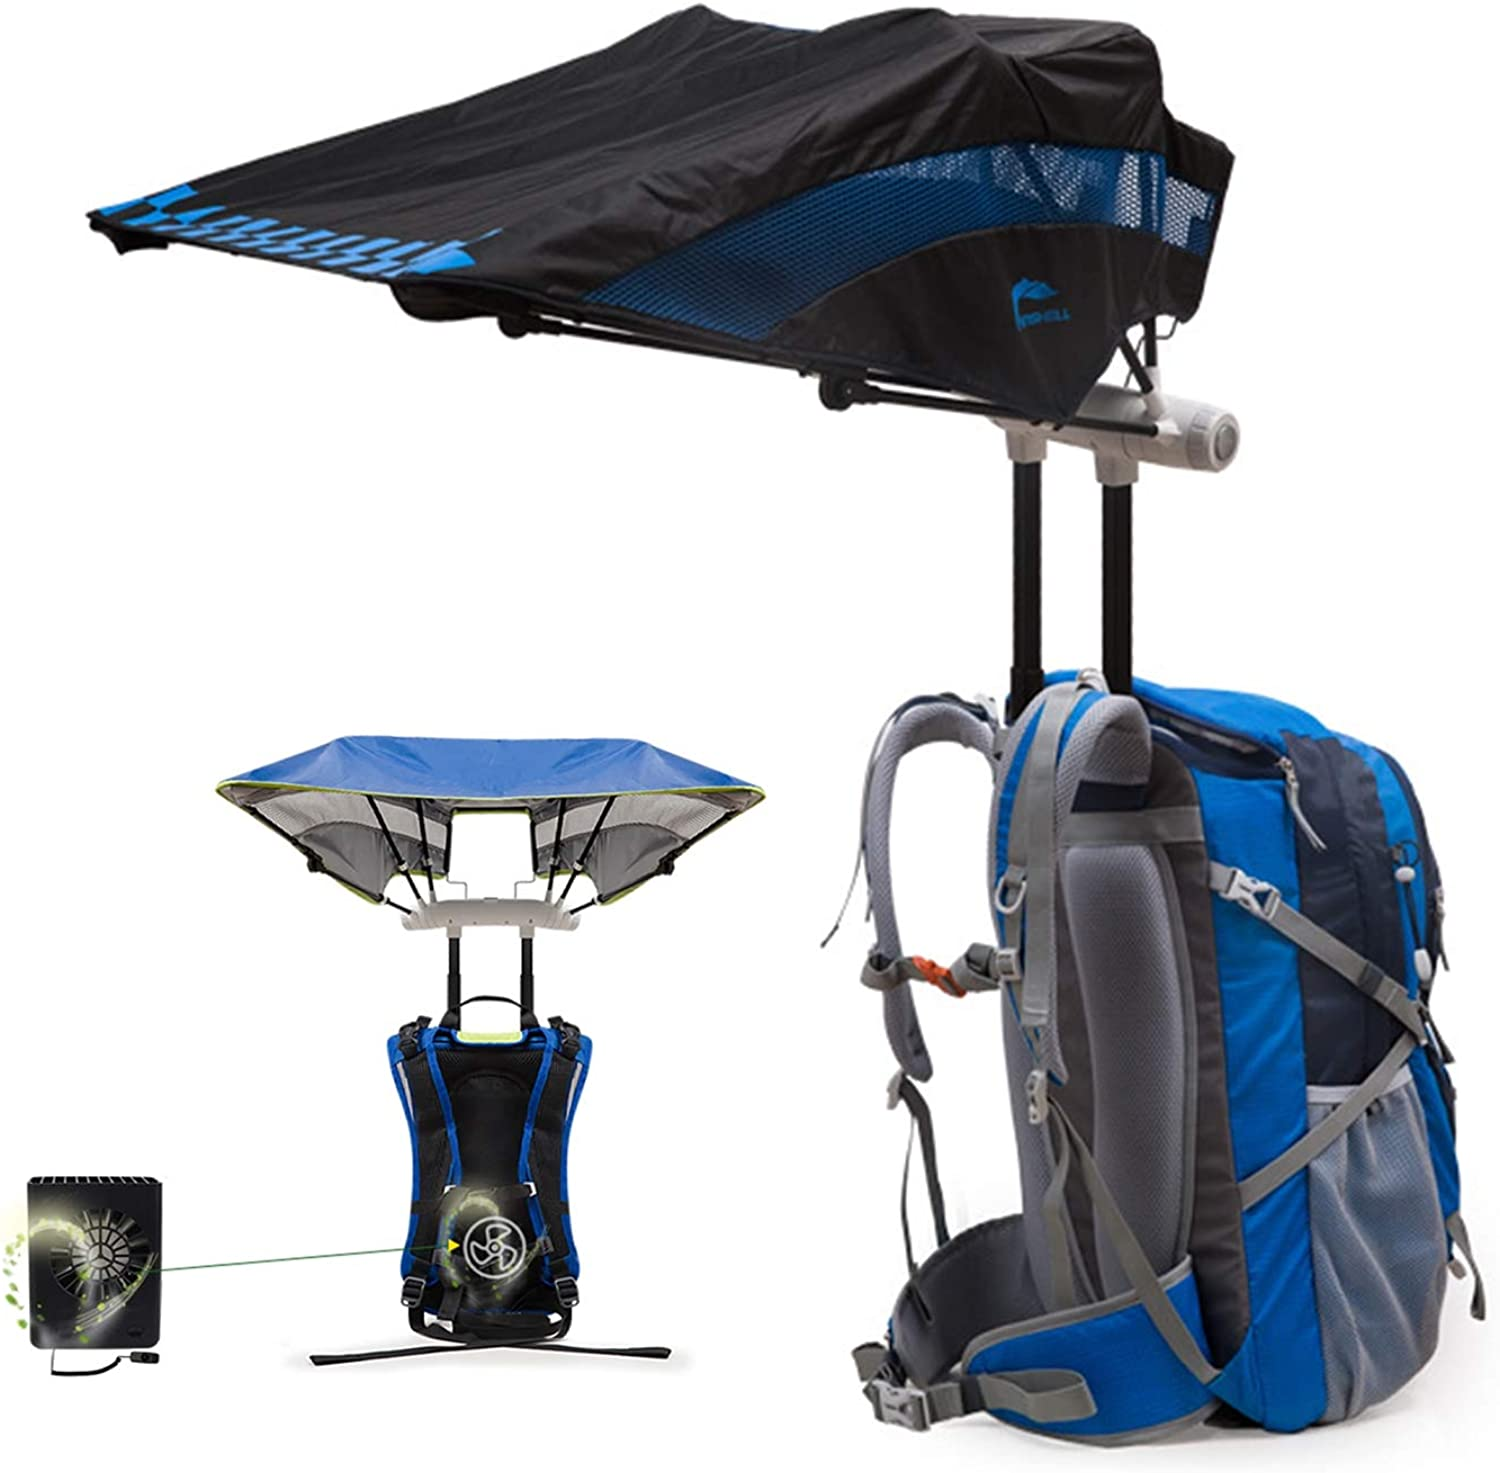 184ec3c0c204 40L Outdoor Backpack Parasol with Cooling Fan for Quick Disassembly ...